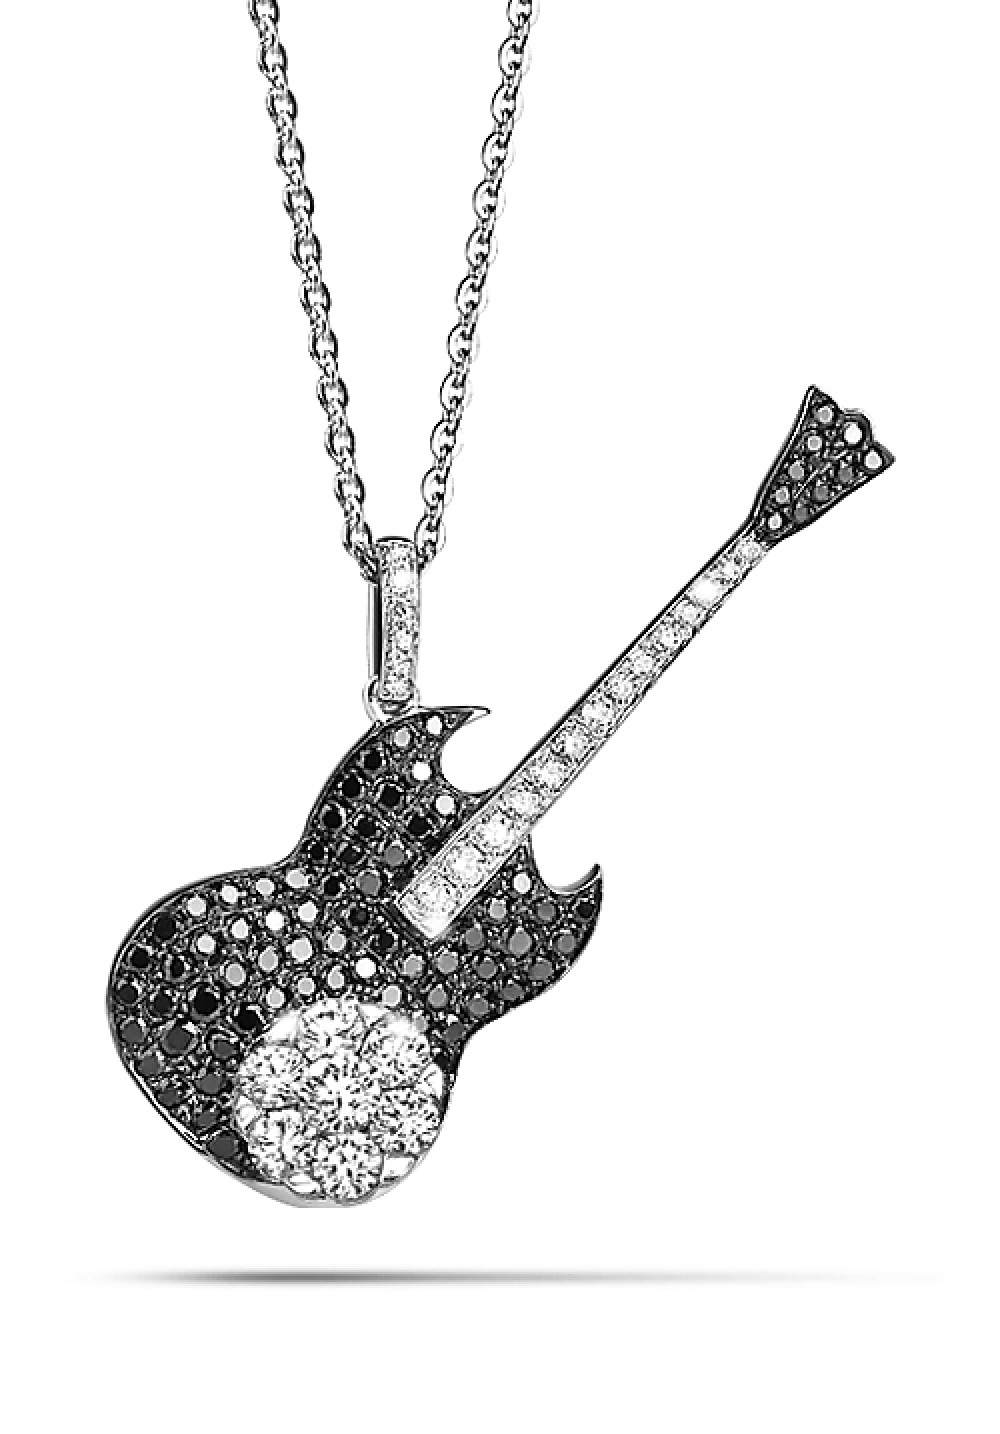 18K Mysterious Black Diamond Guitar Pendant